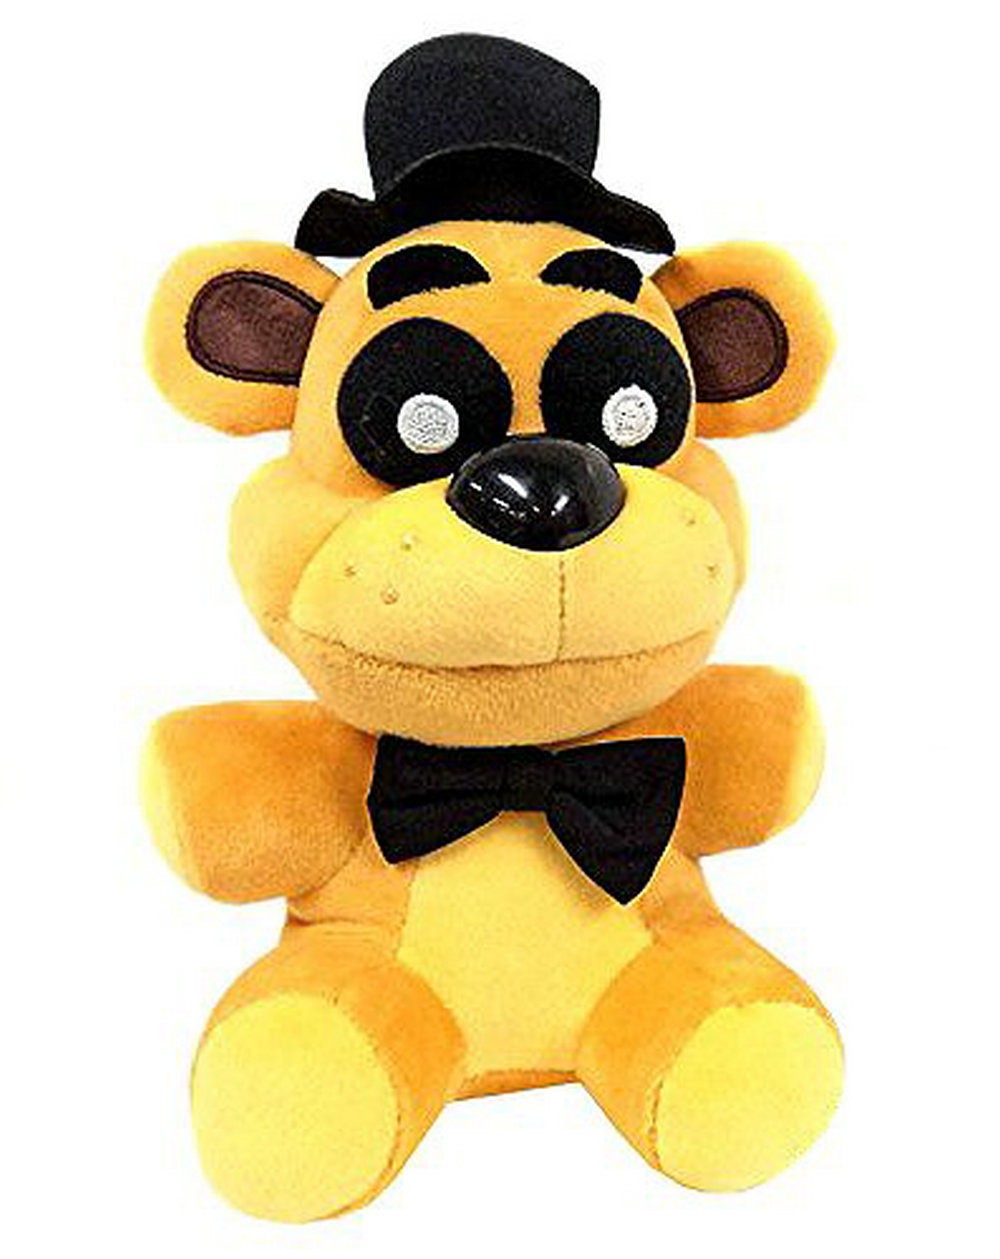 20cm fnaf golden freddy exclusive five nights at freddys collectible